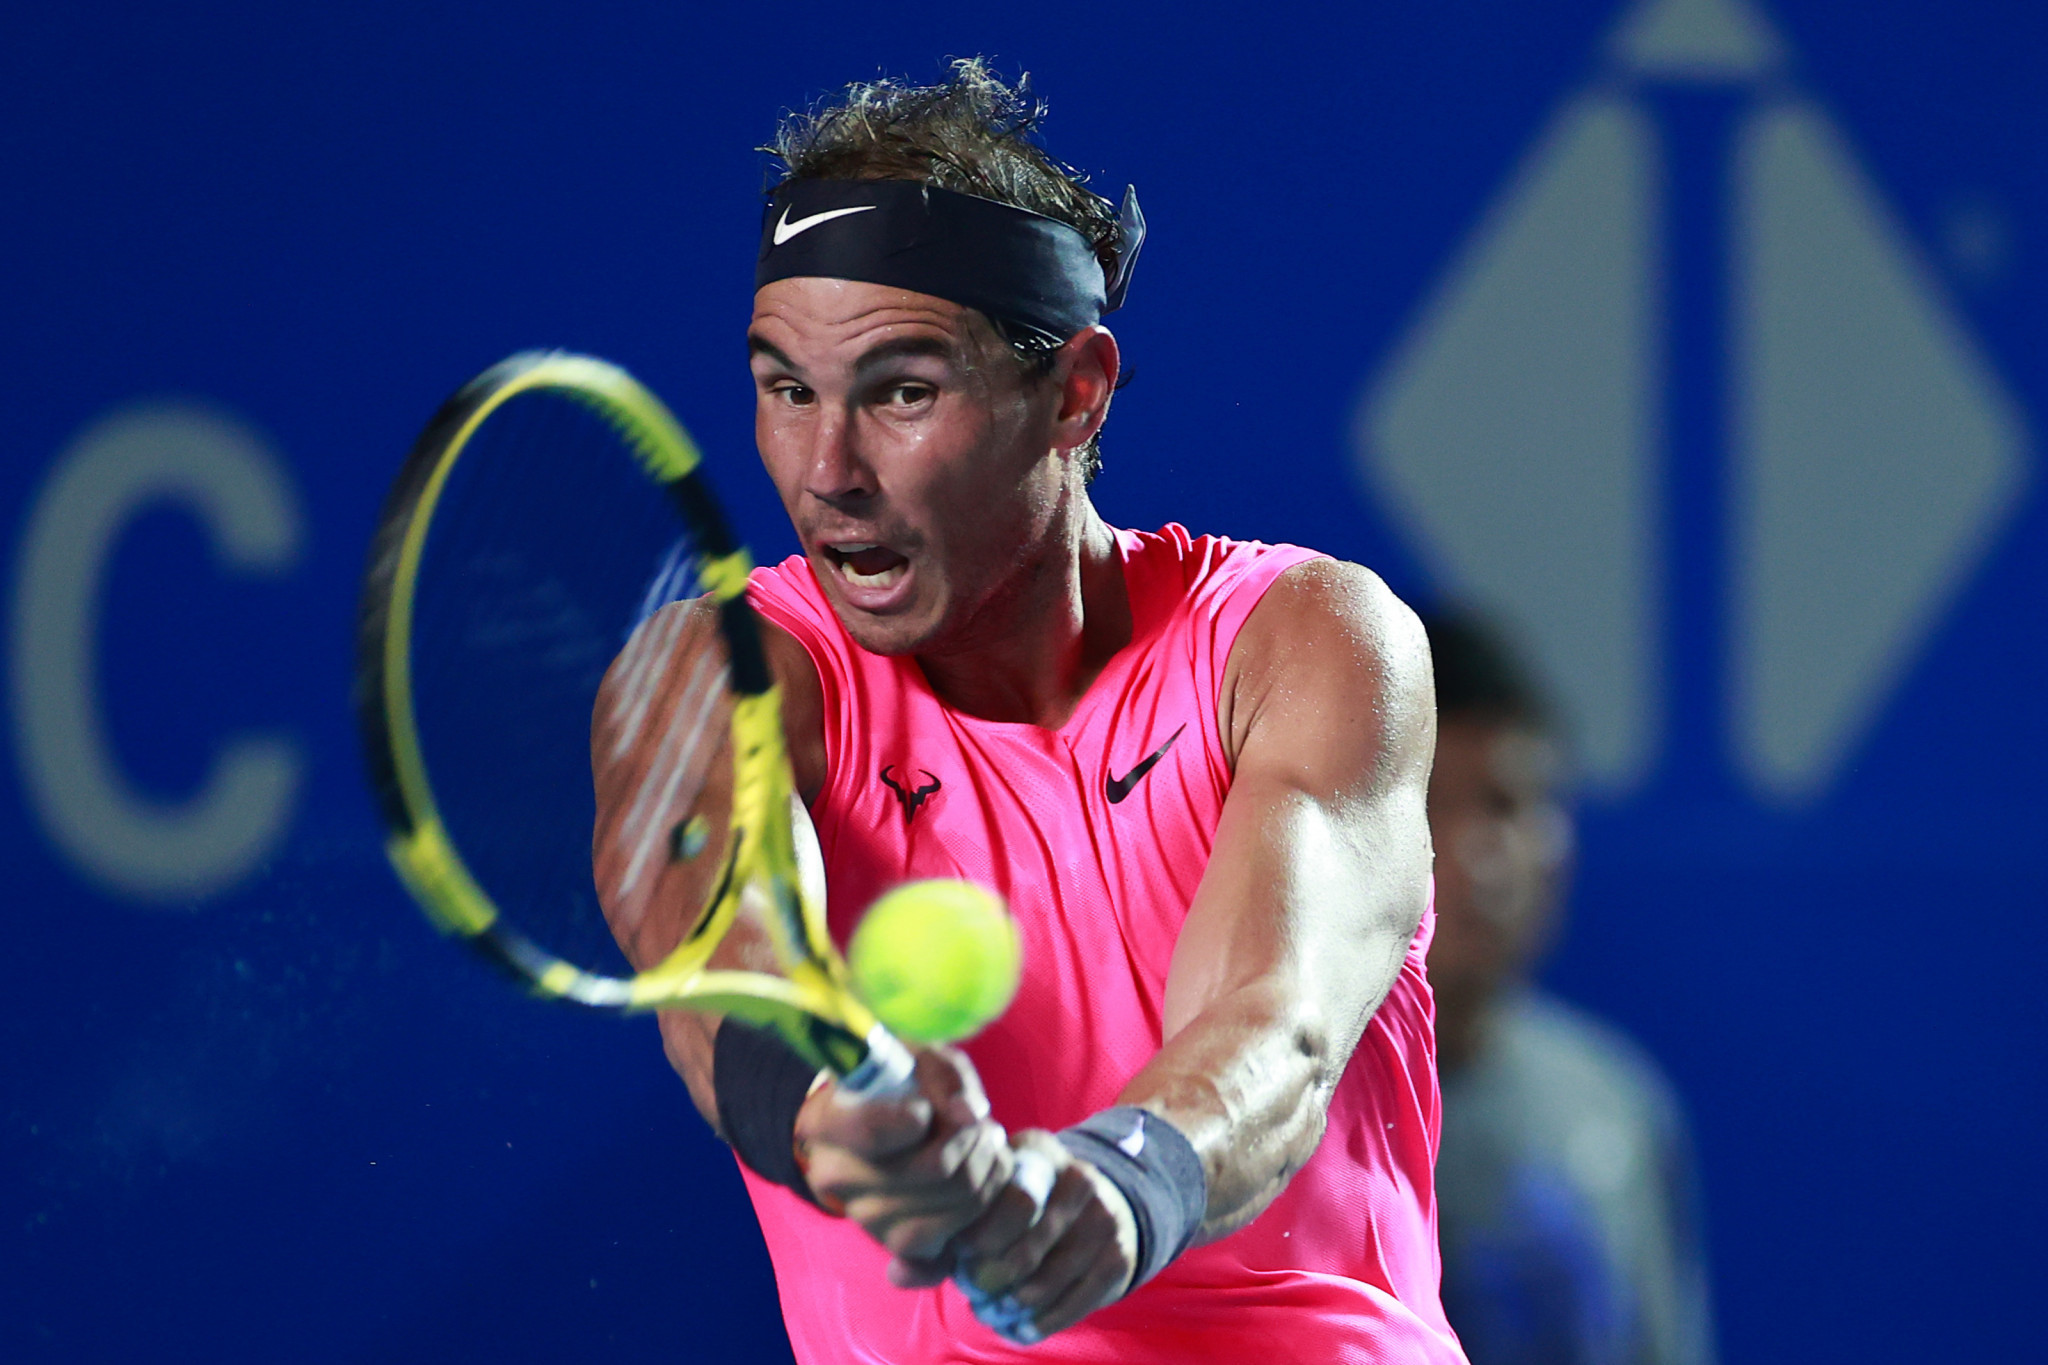 Rafael Nadal is reportedly weighing up which tournaments to play ©Getty Images